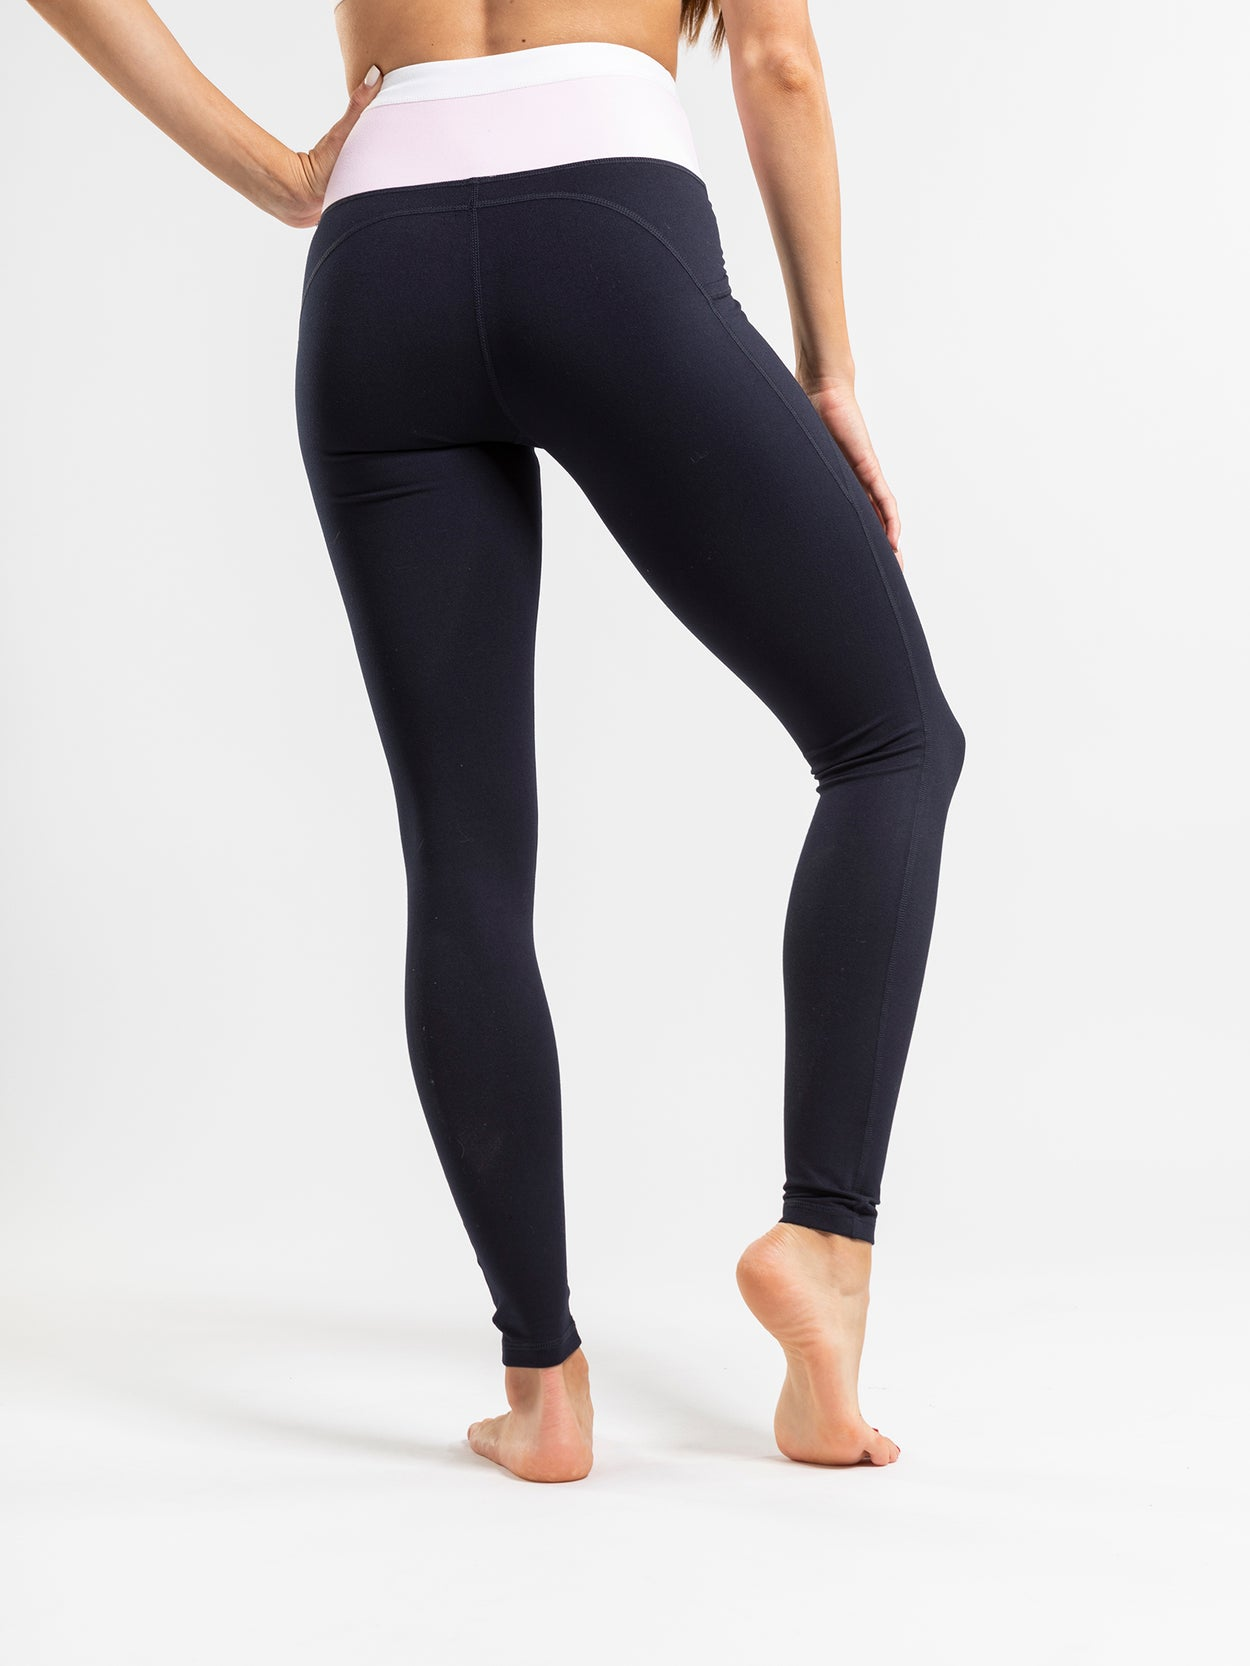 High rise navy leggings with contrast pink & white waistband.